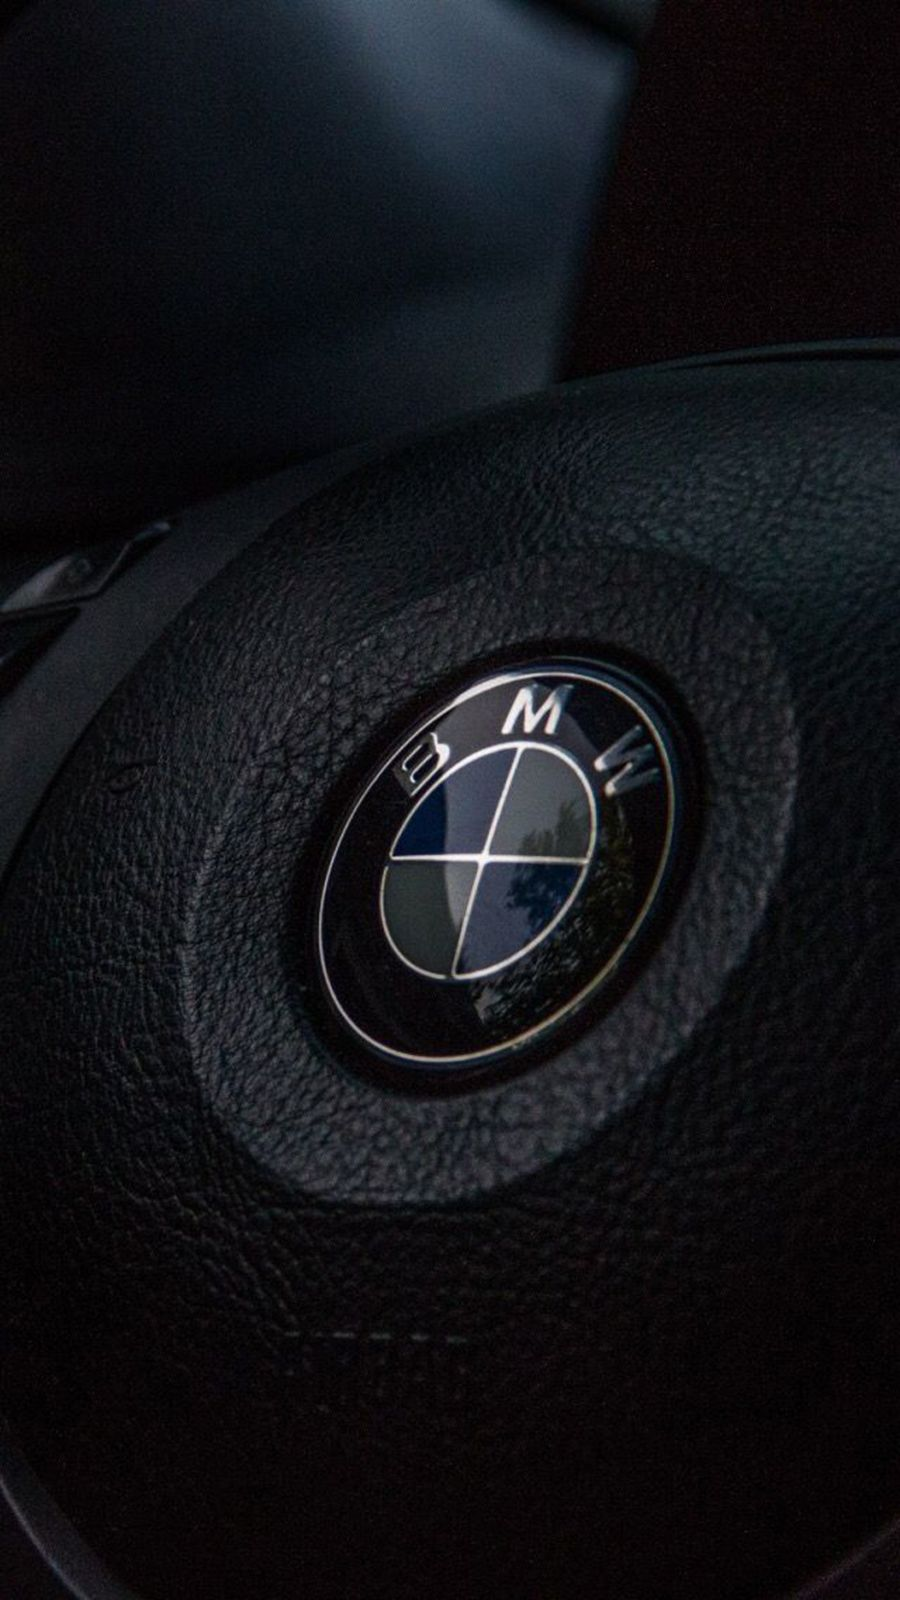 Best Bmw Hd Wallpapers Download Free Bmw Hd Wallpapers 30 In